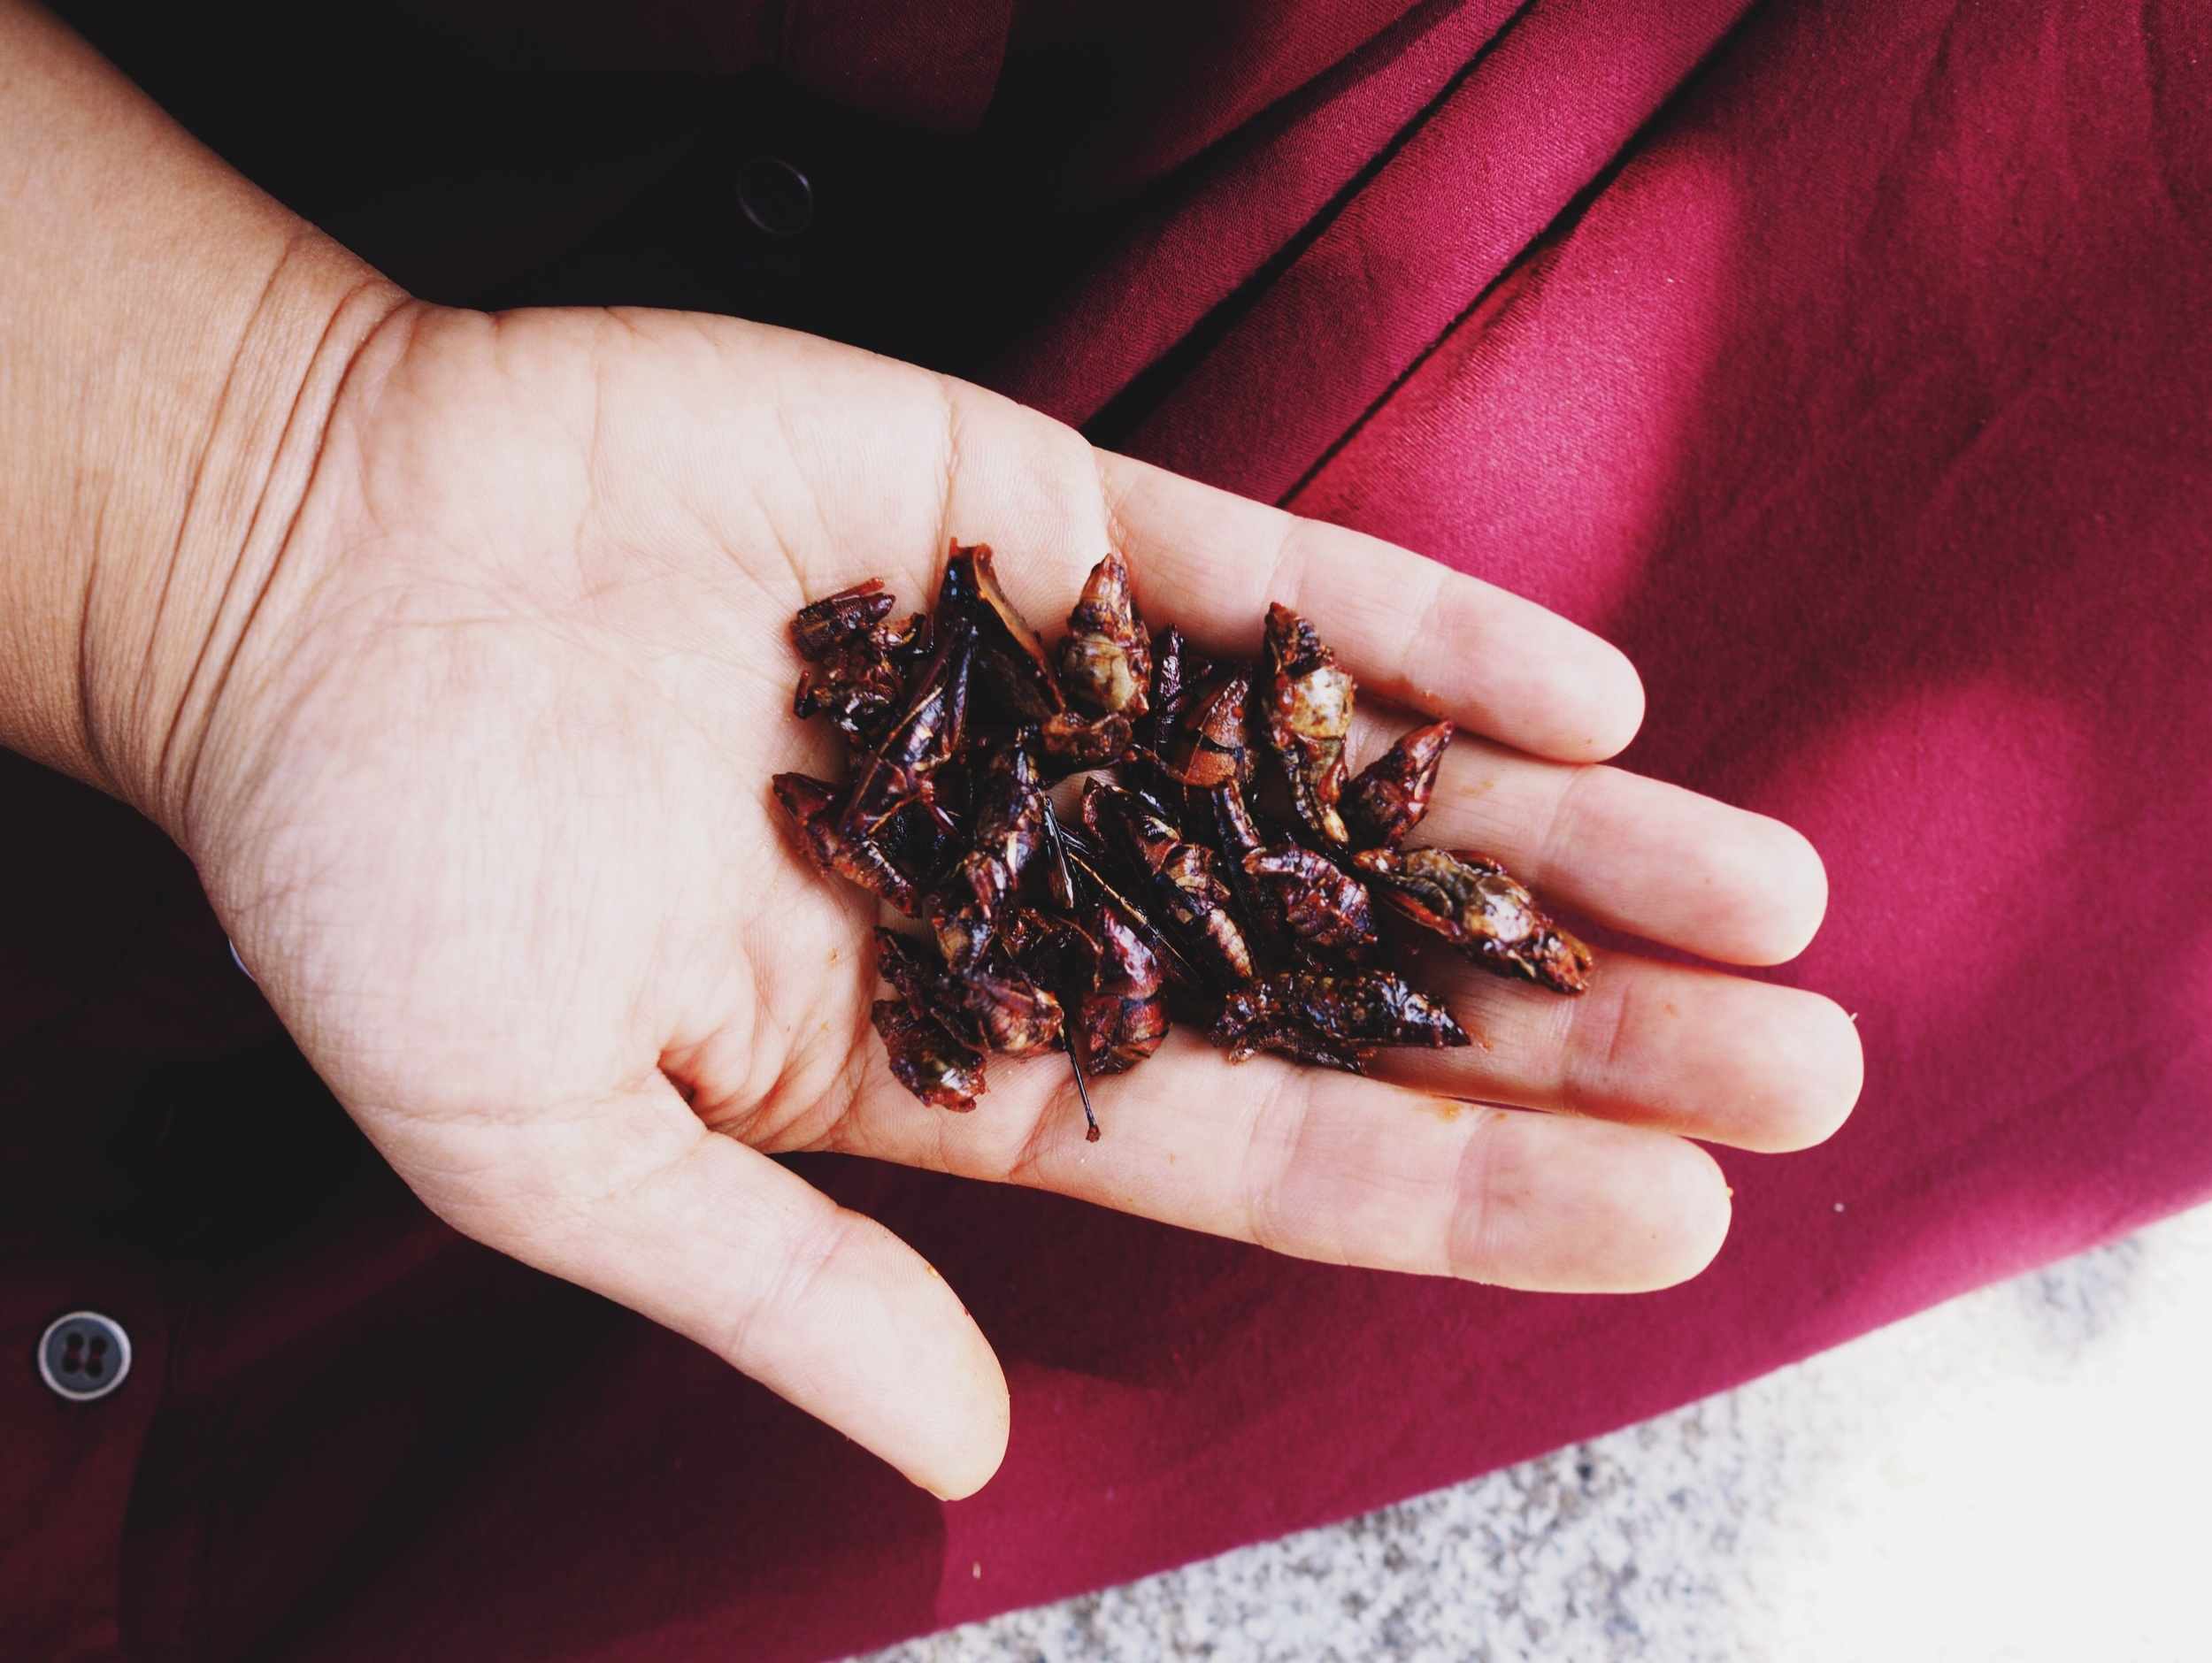 Chapulines – fried grasshoppers with chile and lime